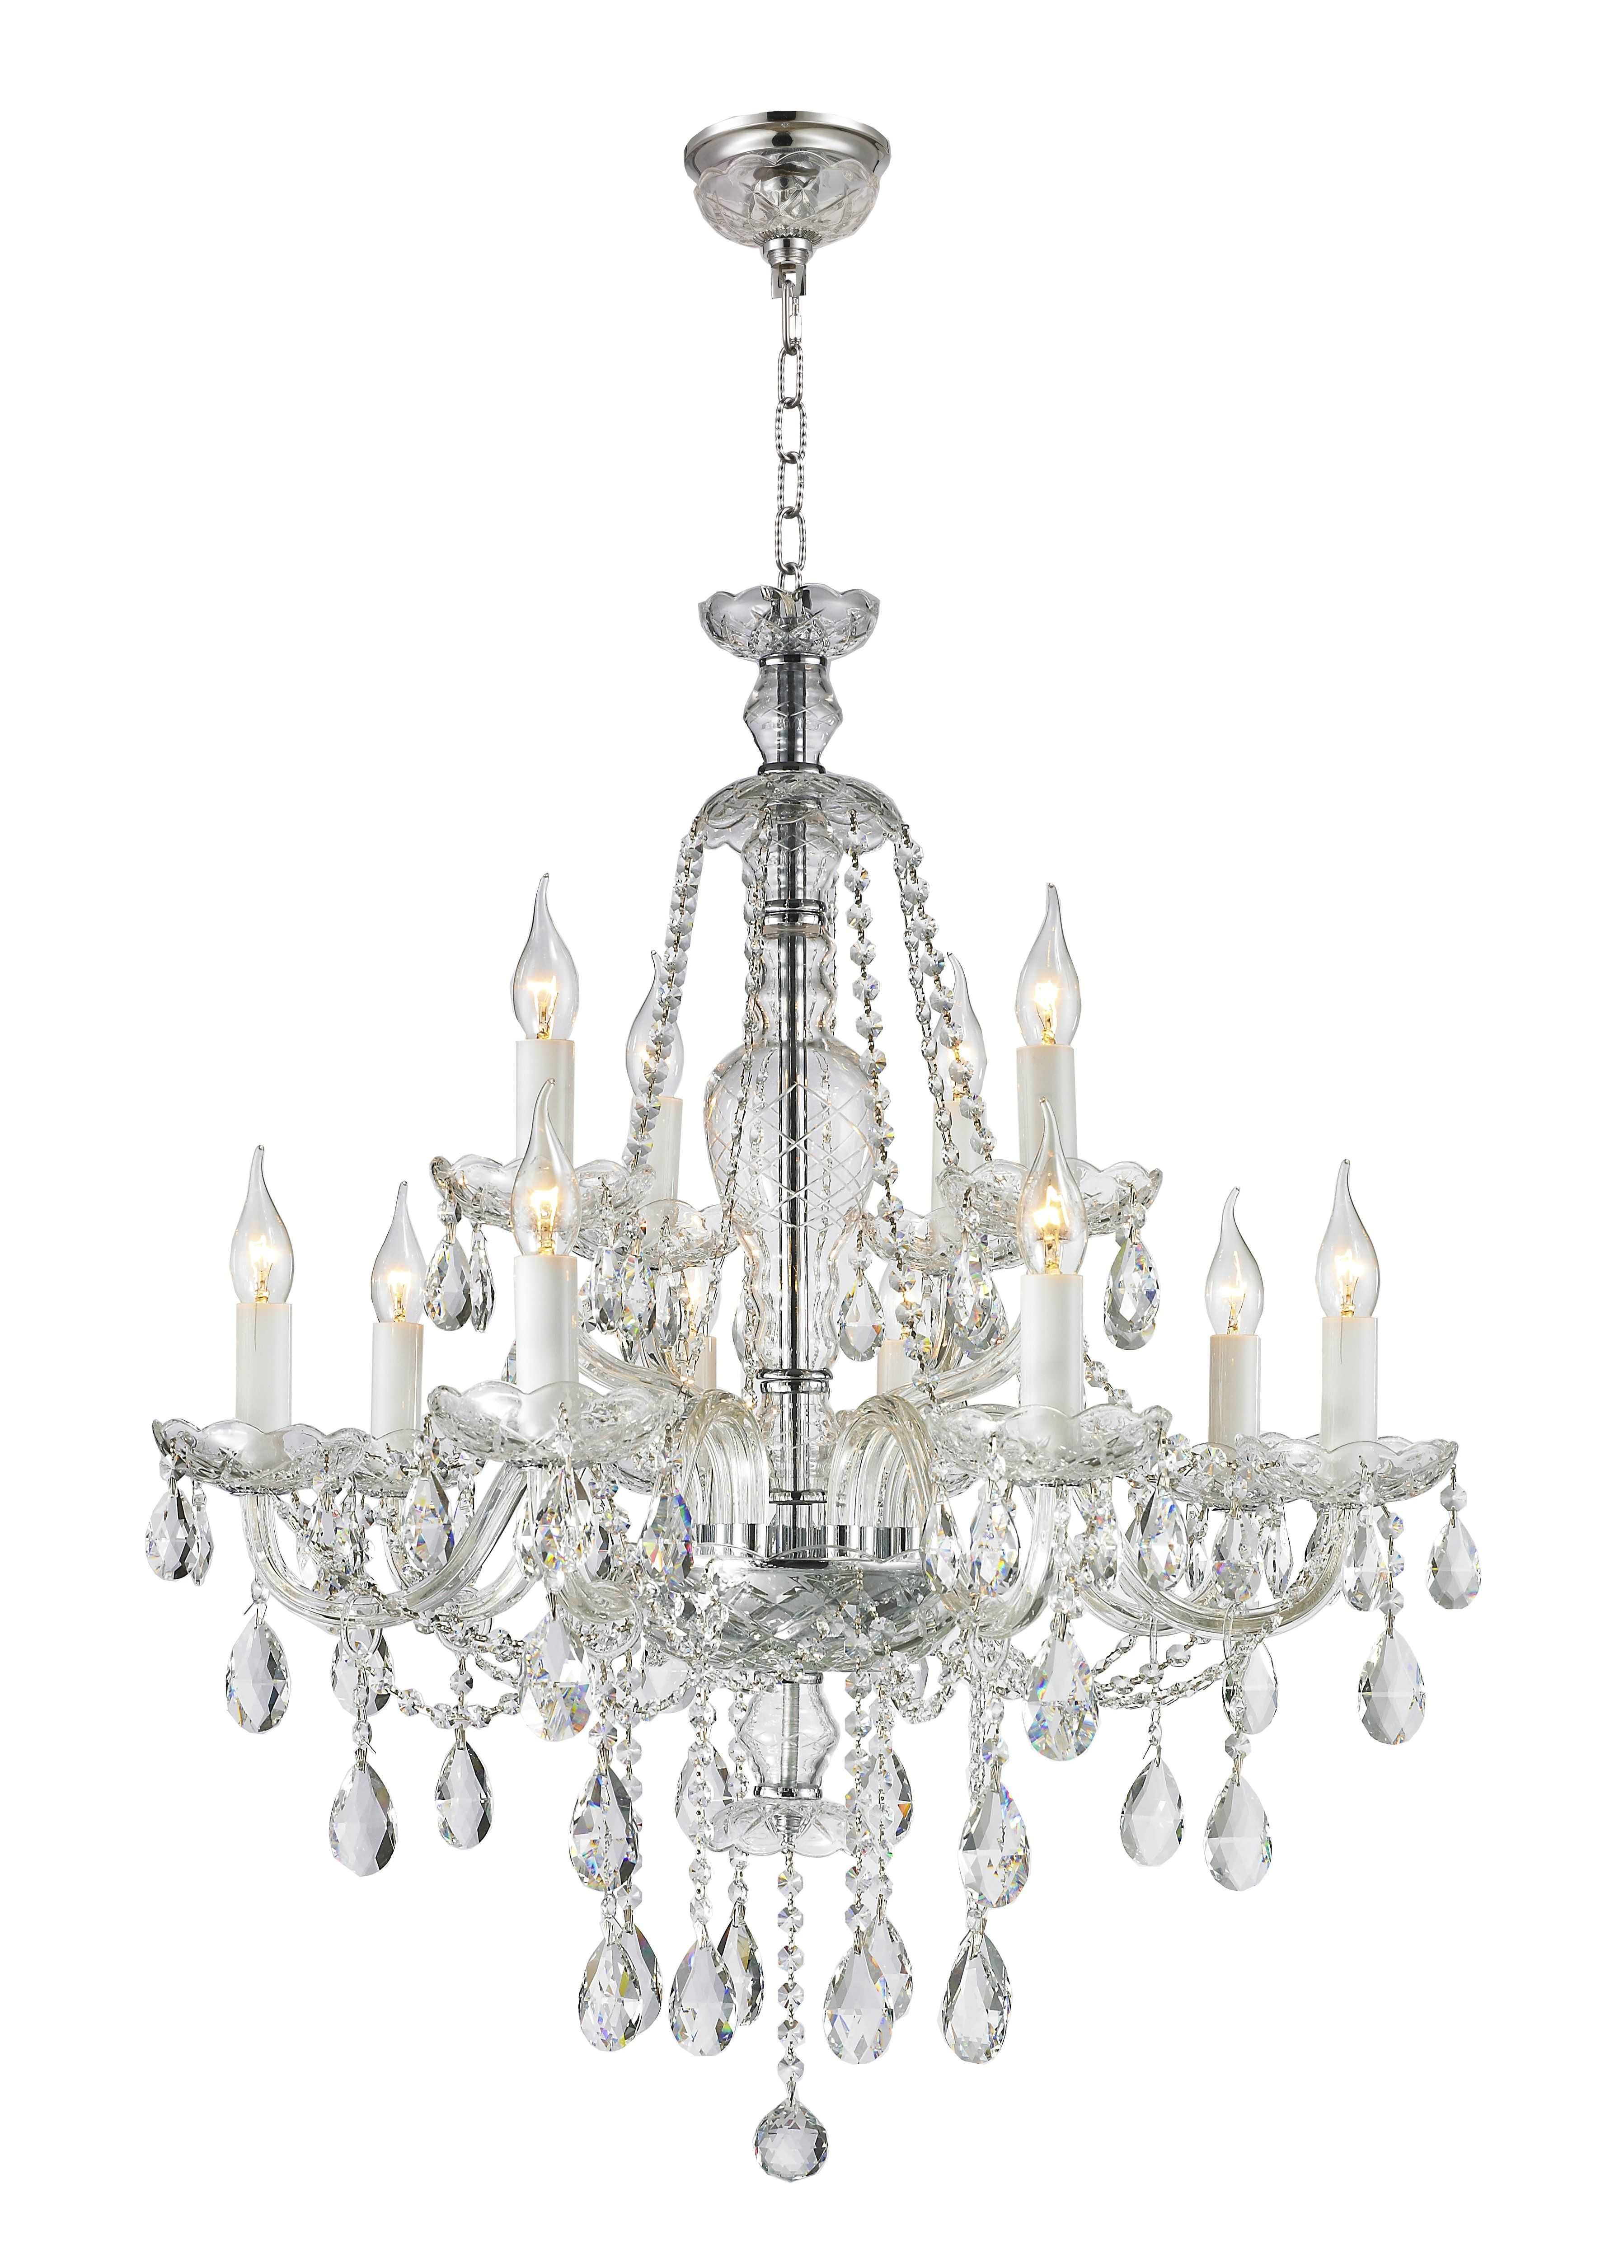 Bohemian Brilliance 12 Arm Crystal Chandelier Chrome Crystal Chandelier Chrome Chandeliers Chandelier